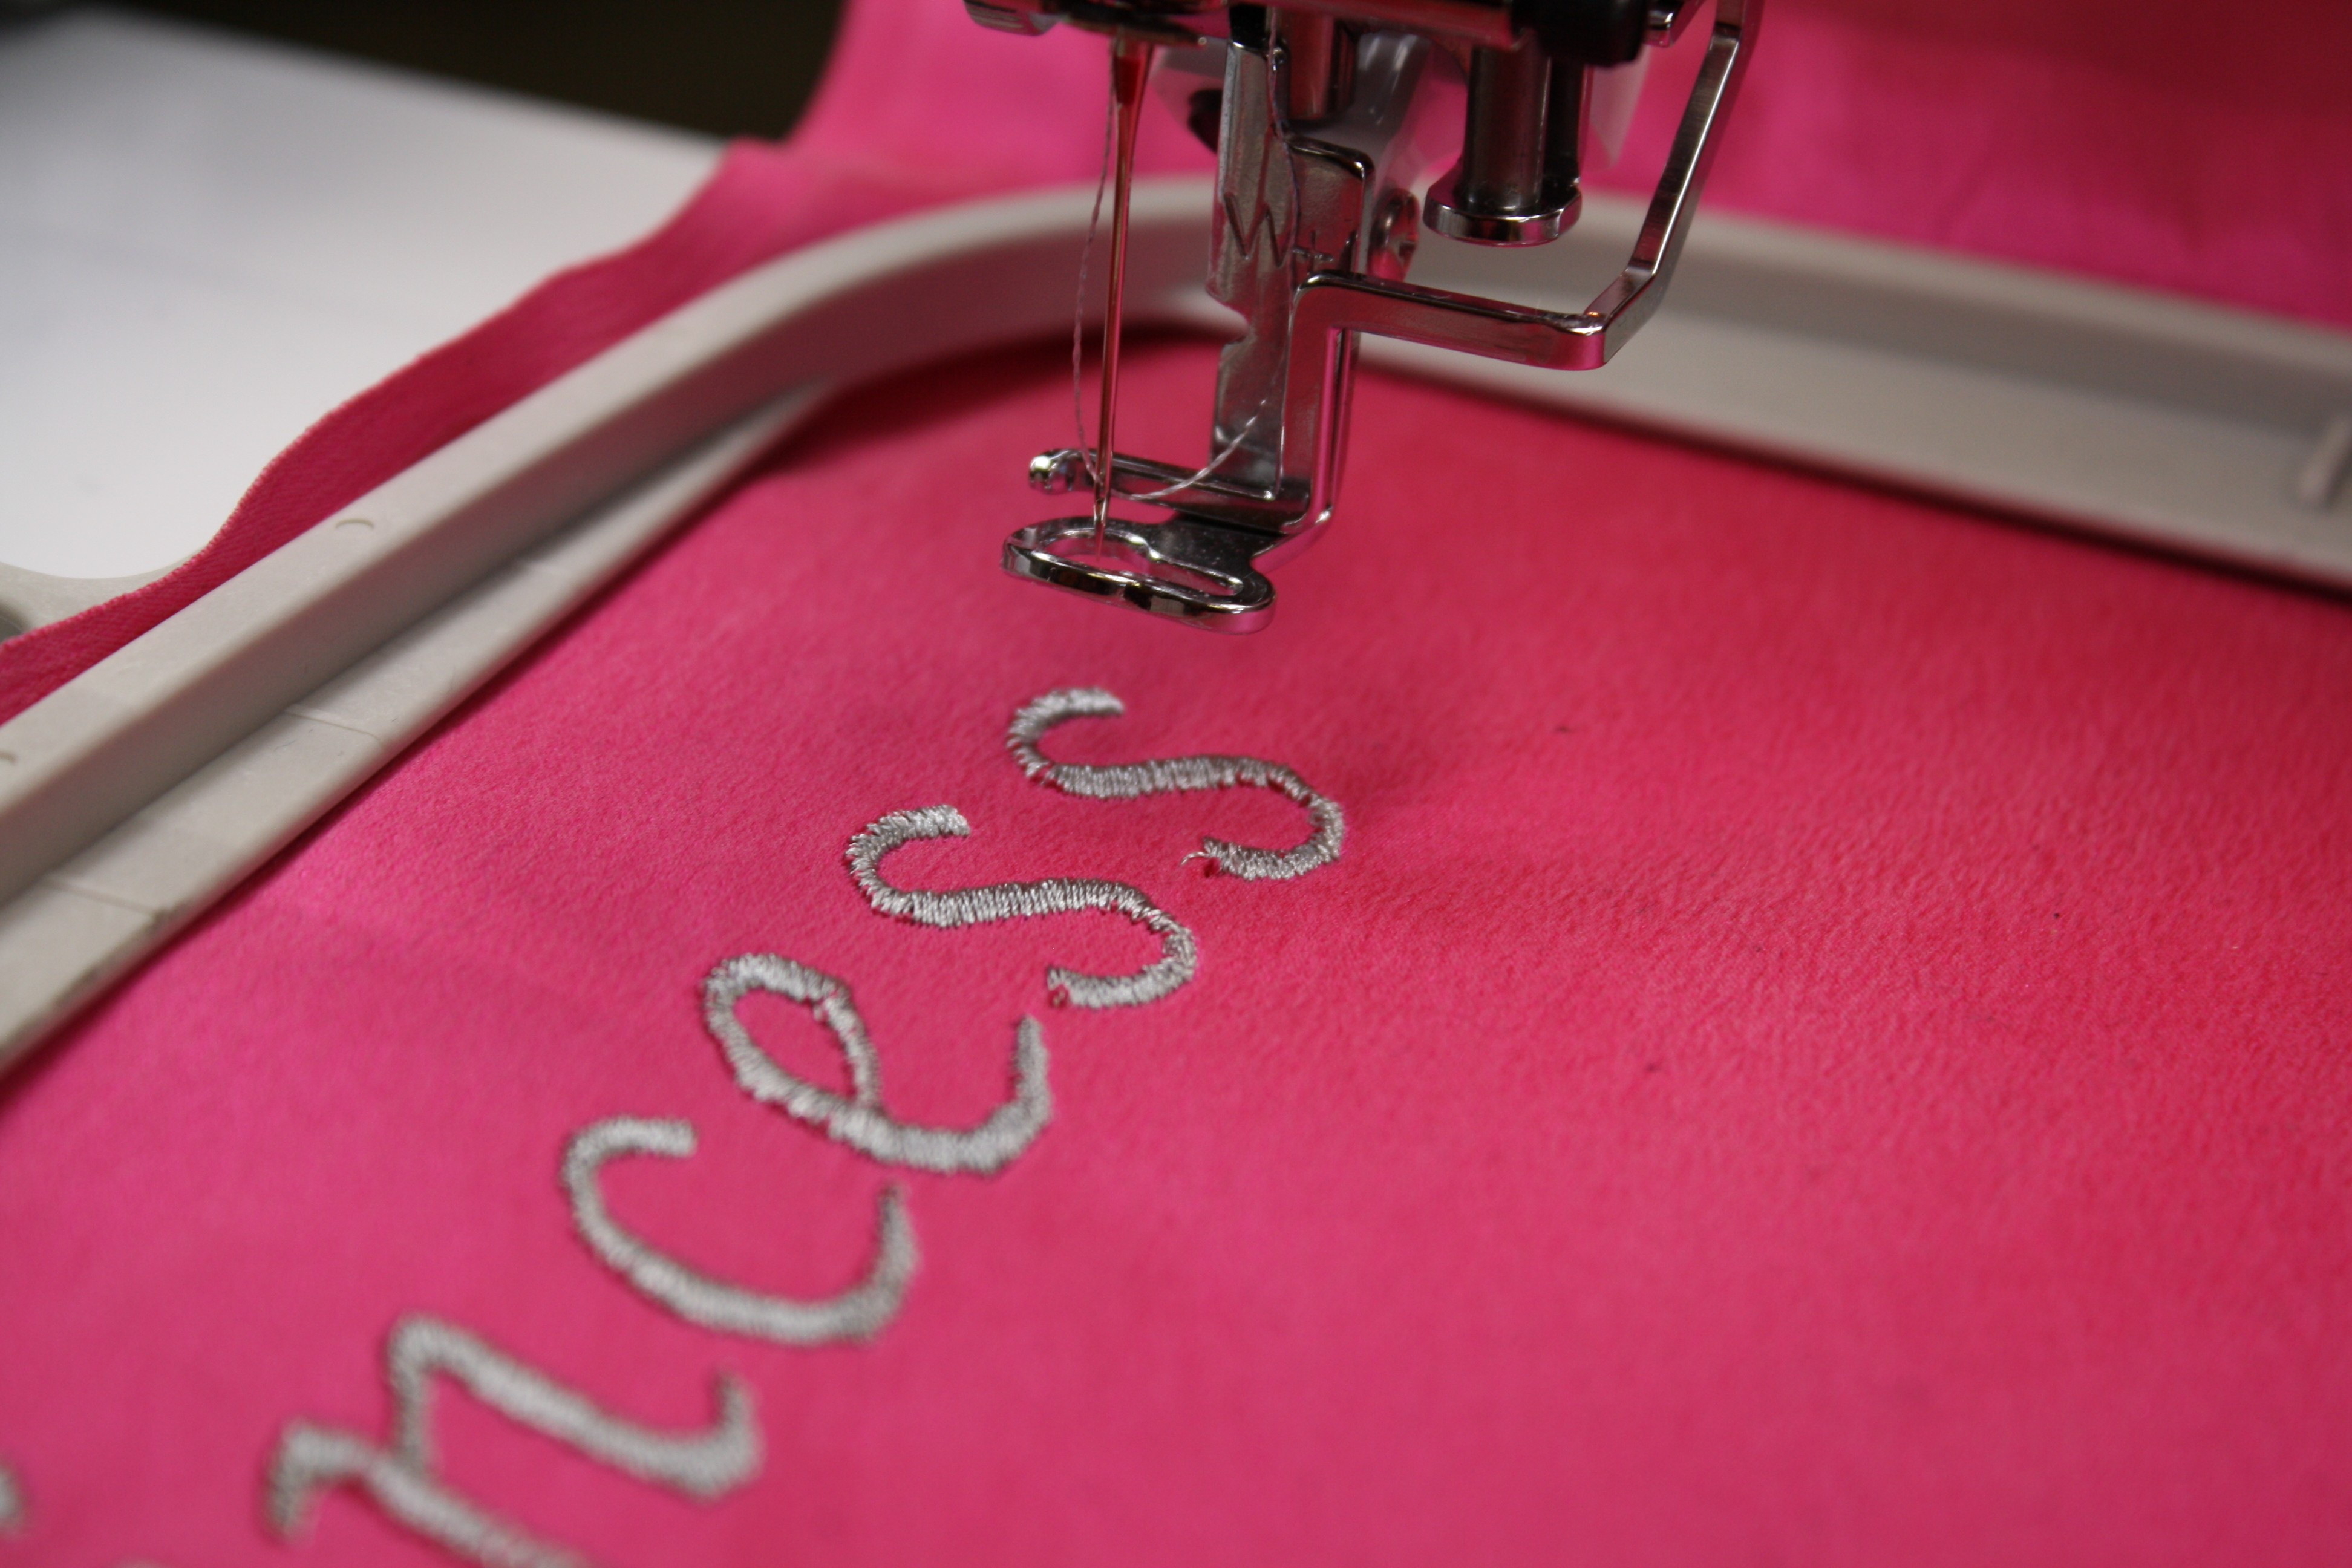 how to embroider archives angela wolf With sewing machine that does letters